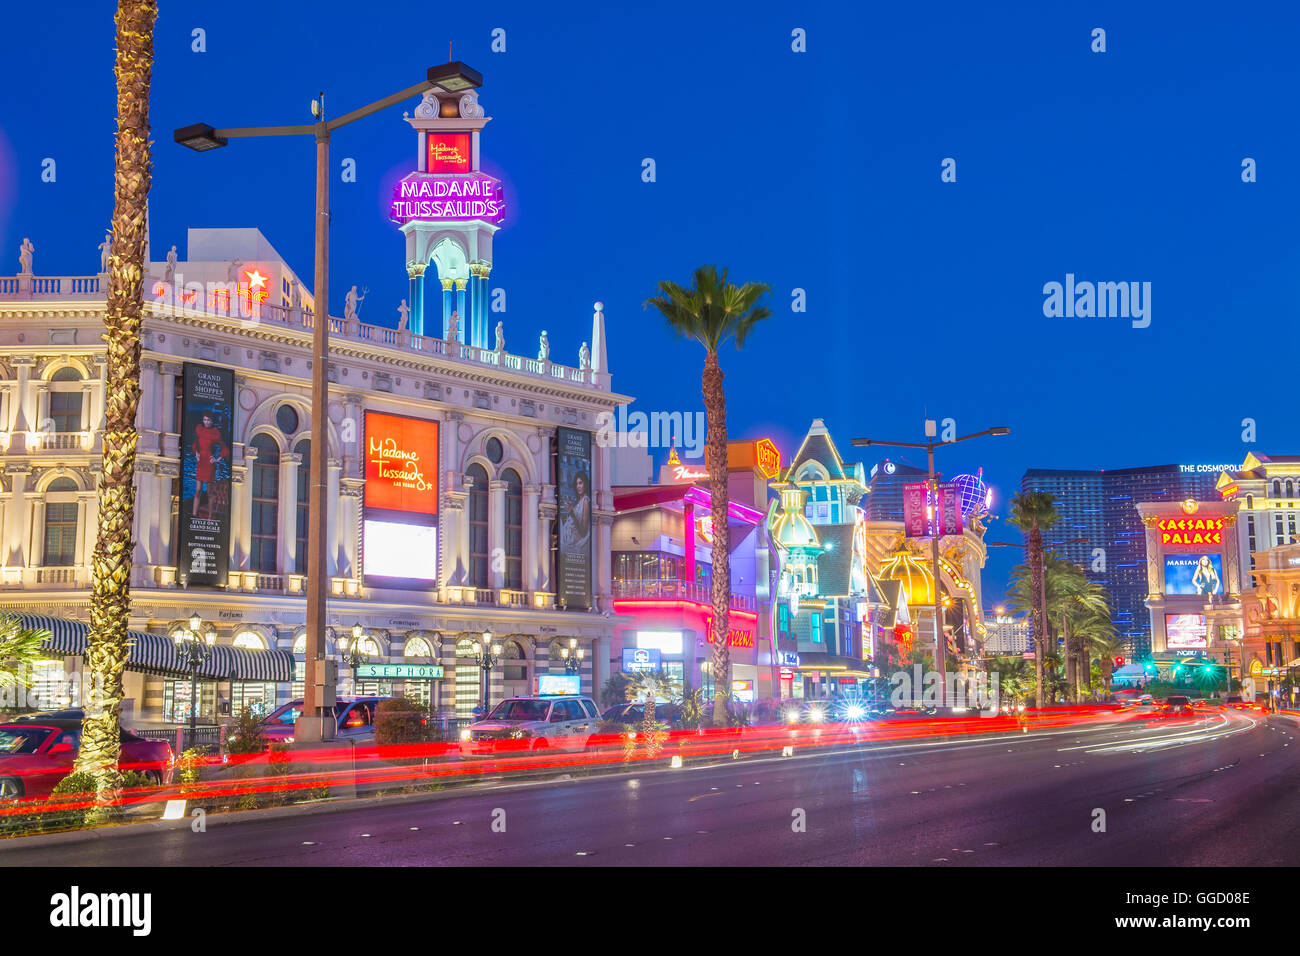 View of the strip in Las Vegas - Stock Image